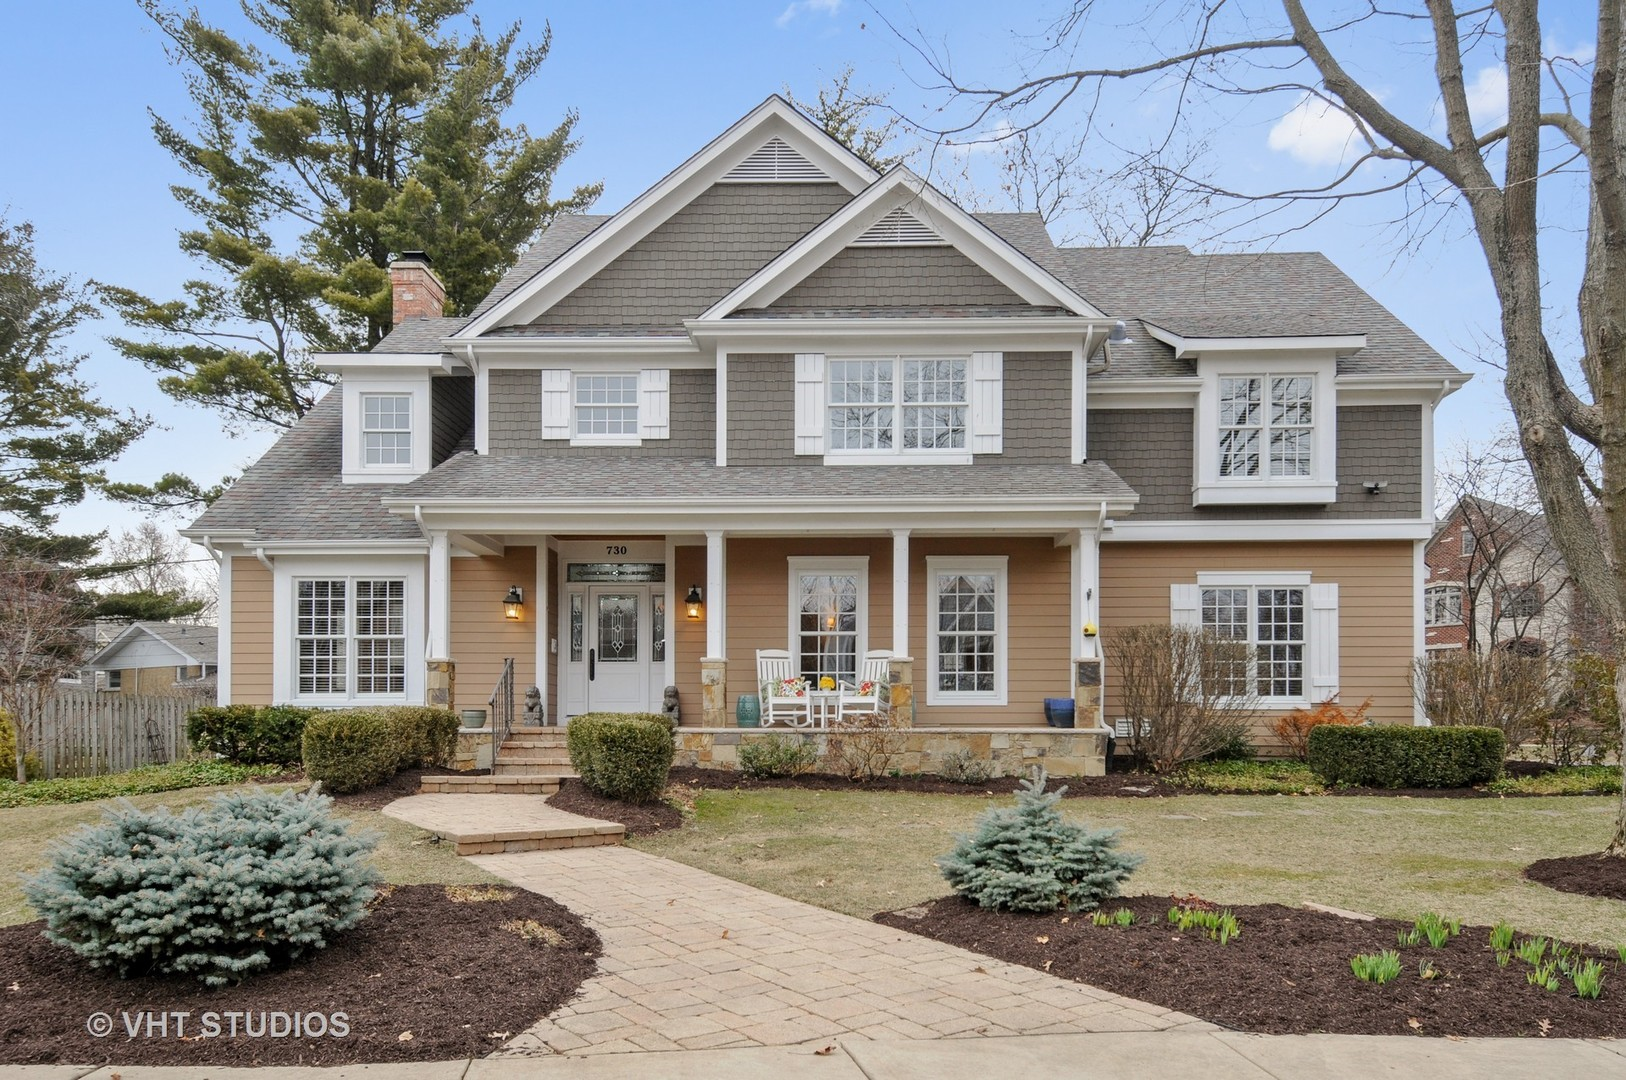 730 SOUTH LOOMIS STREET, NAPERVILLE, IL 60540